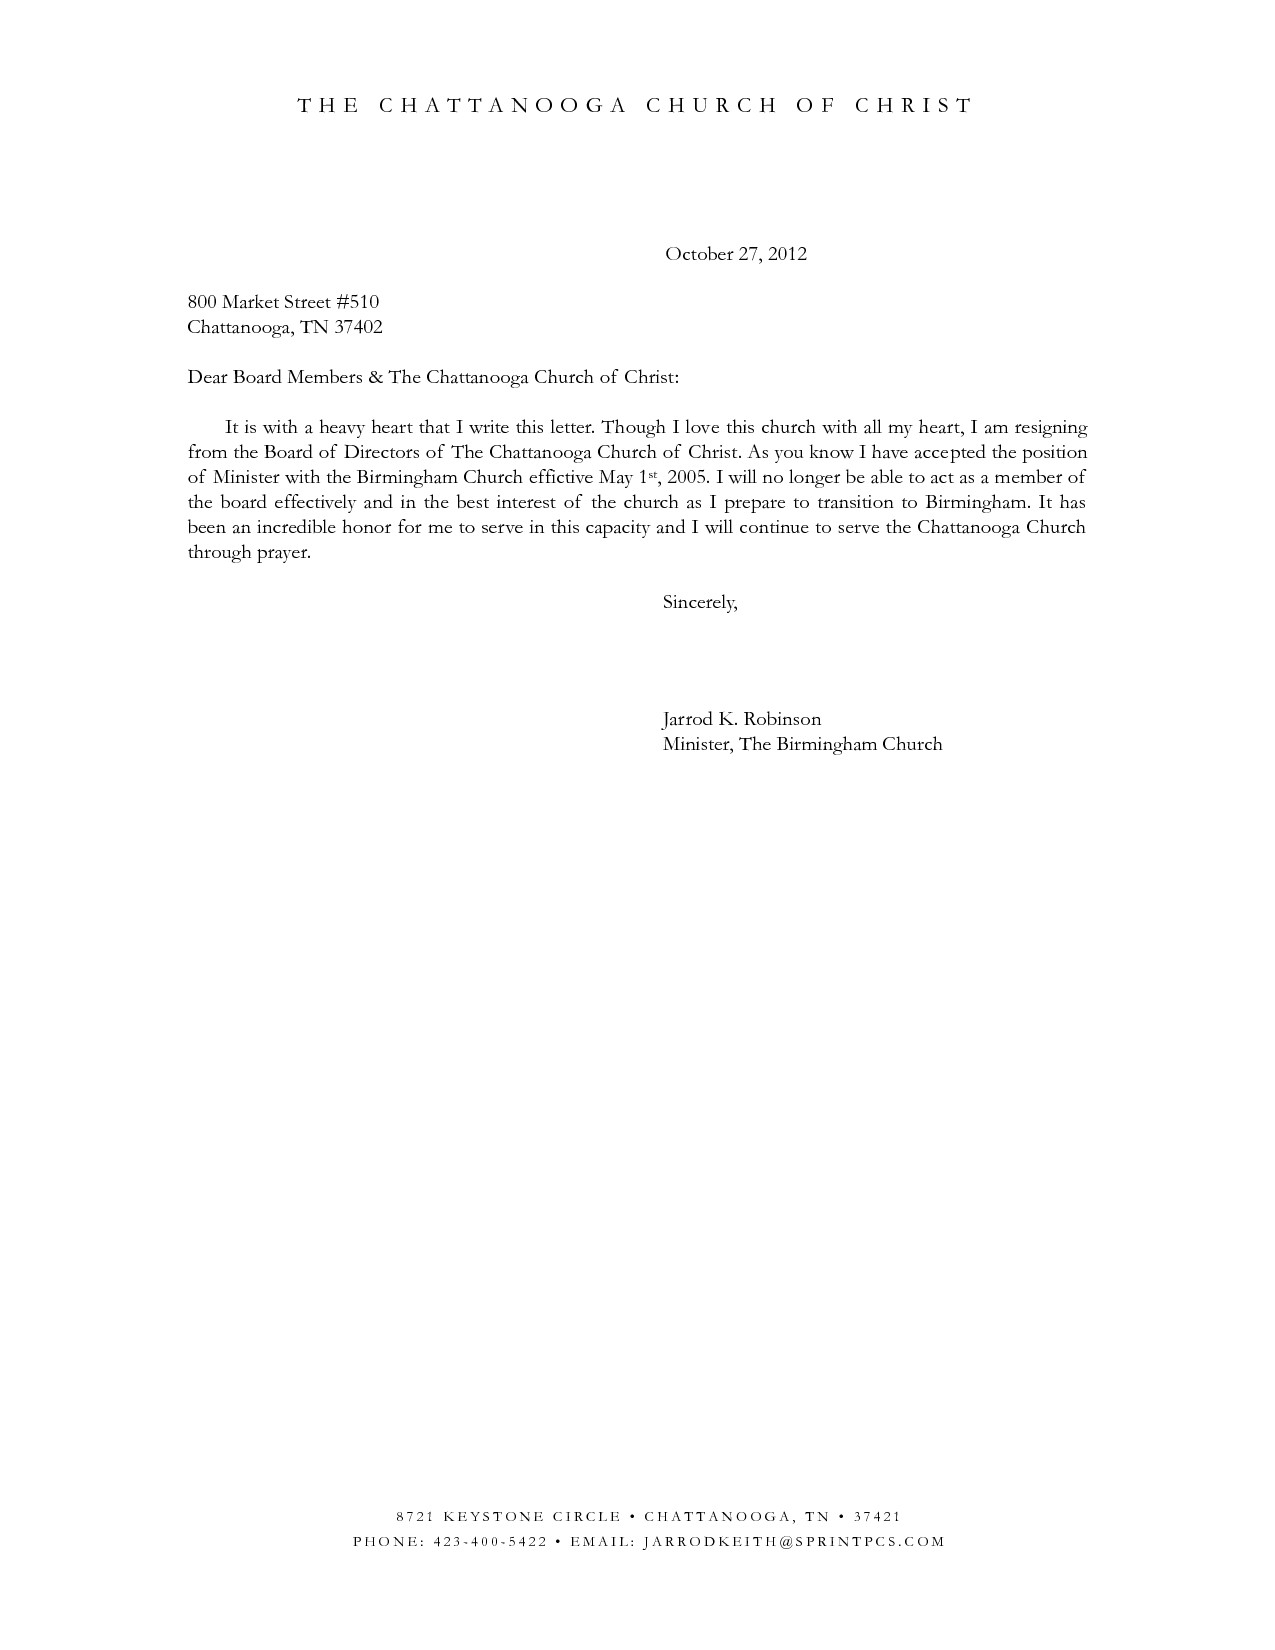 Resignation Letter Template Free - Free Resignation Letter Template Word Best Sample Cover Letter